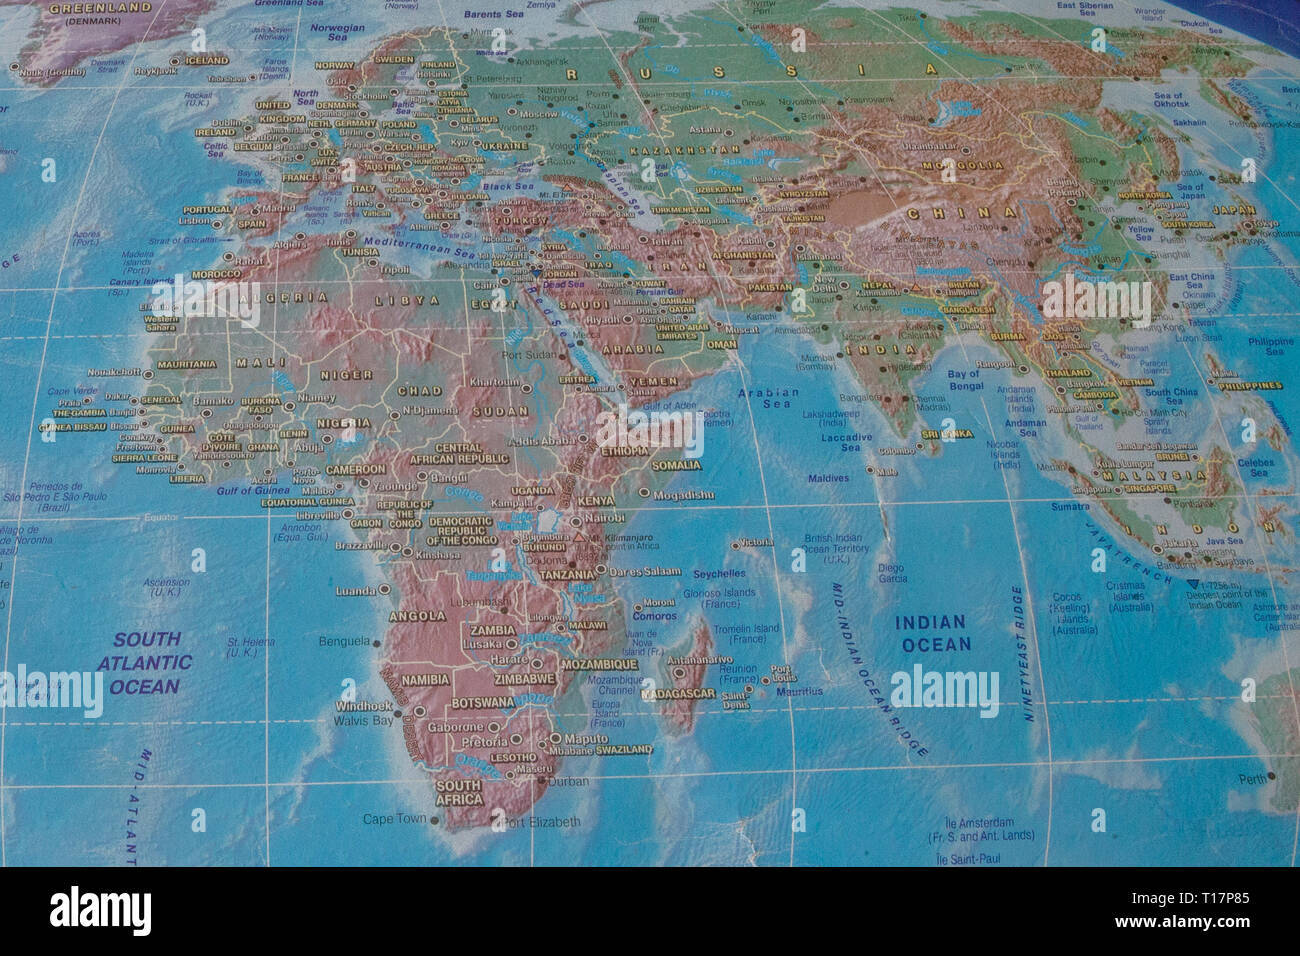 Africa and Eurasia on the map of the world. Stock Photo